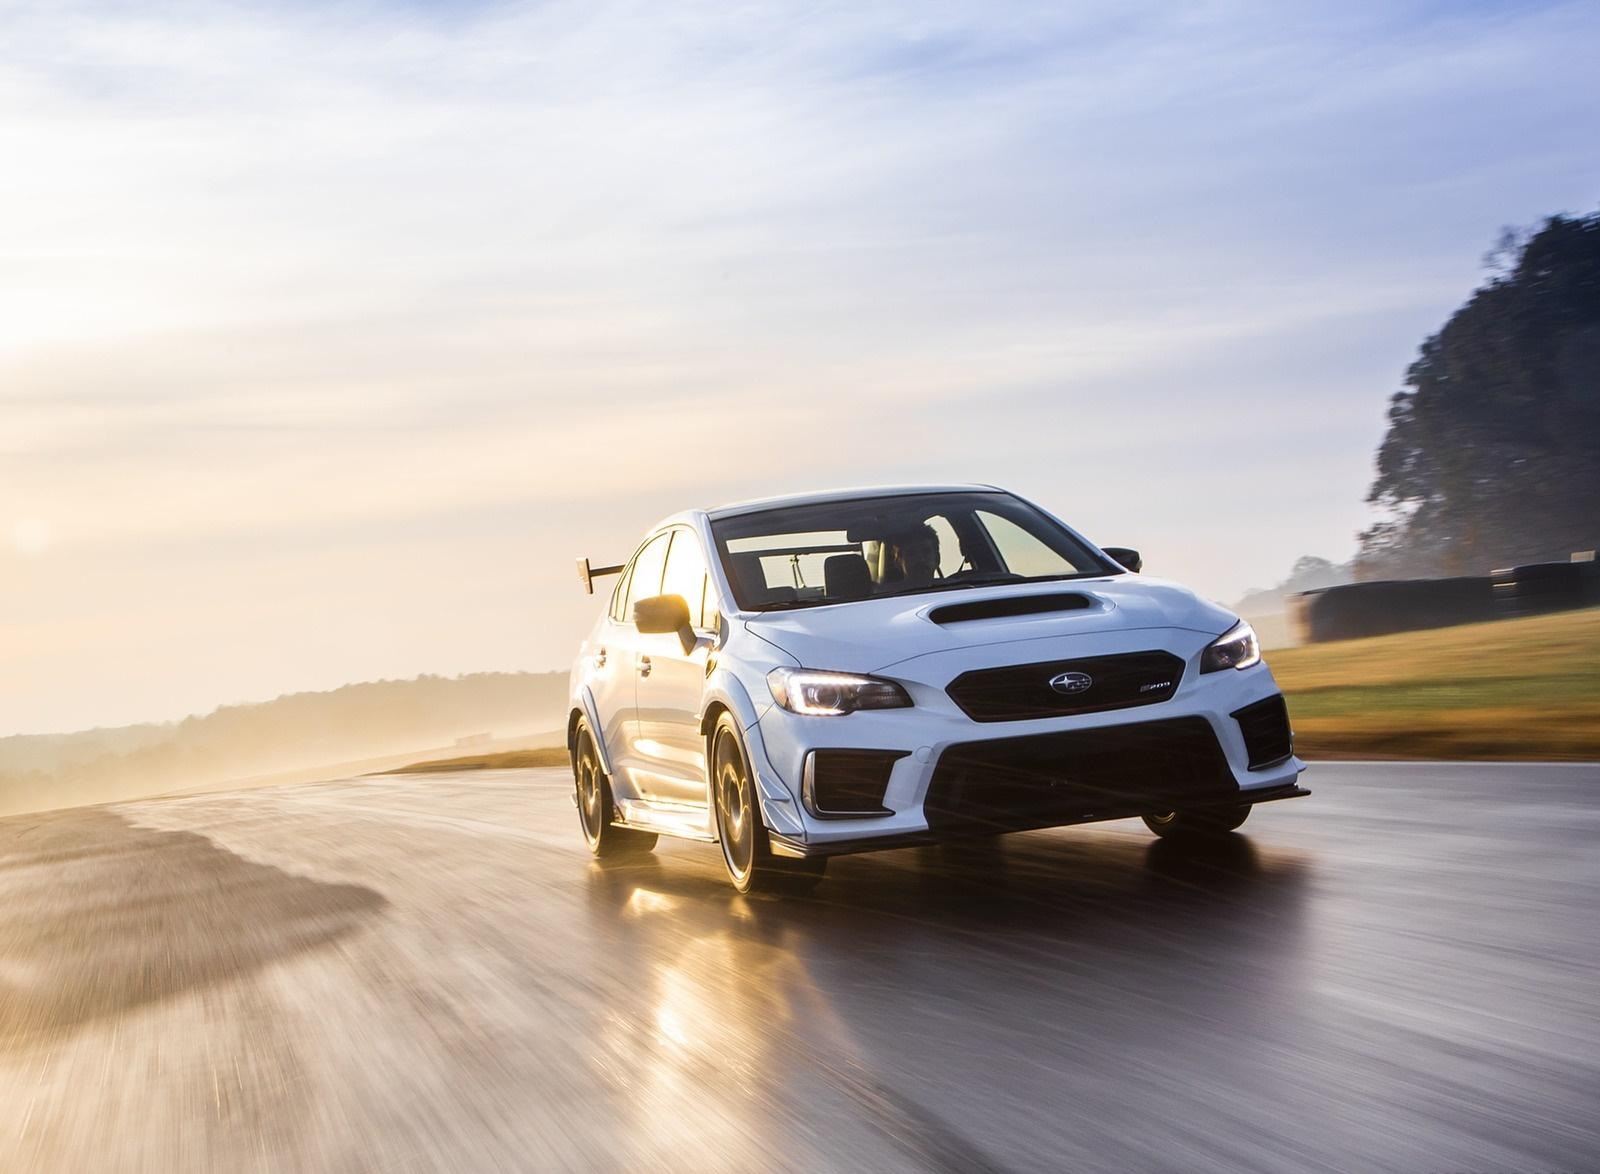 2019 Subaru WRX STI S209 Wallpapers (52+ HD Images) - NewCarCars